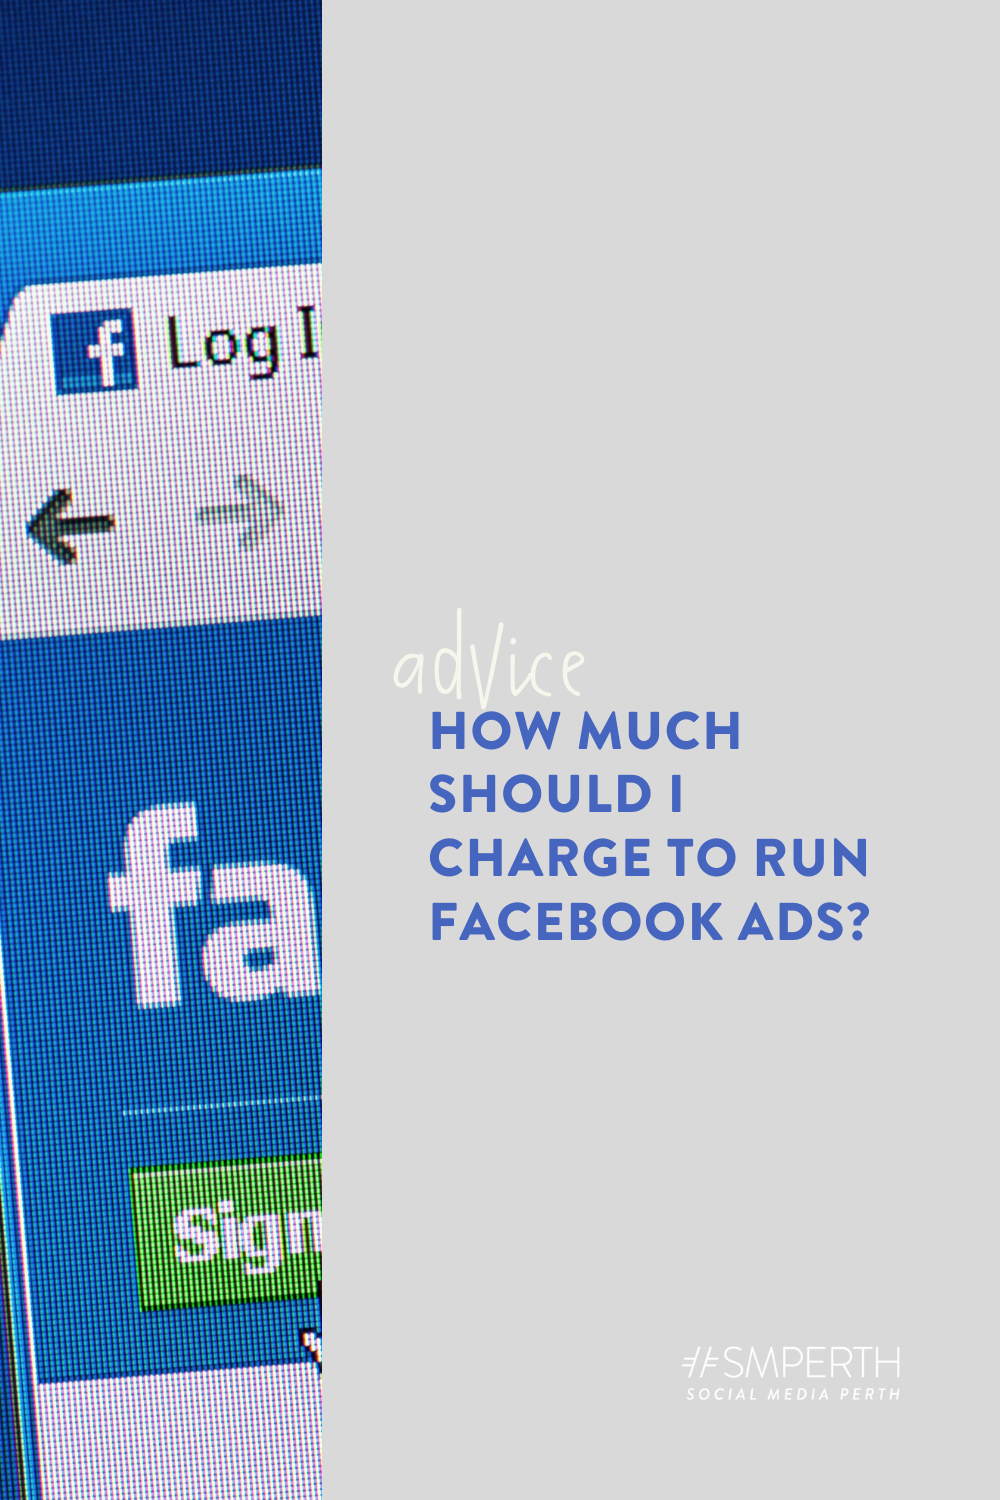 How much should I charge to run Facebook ads?